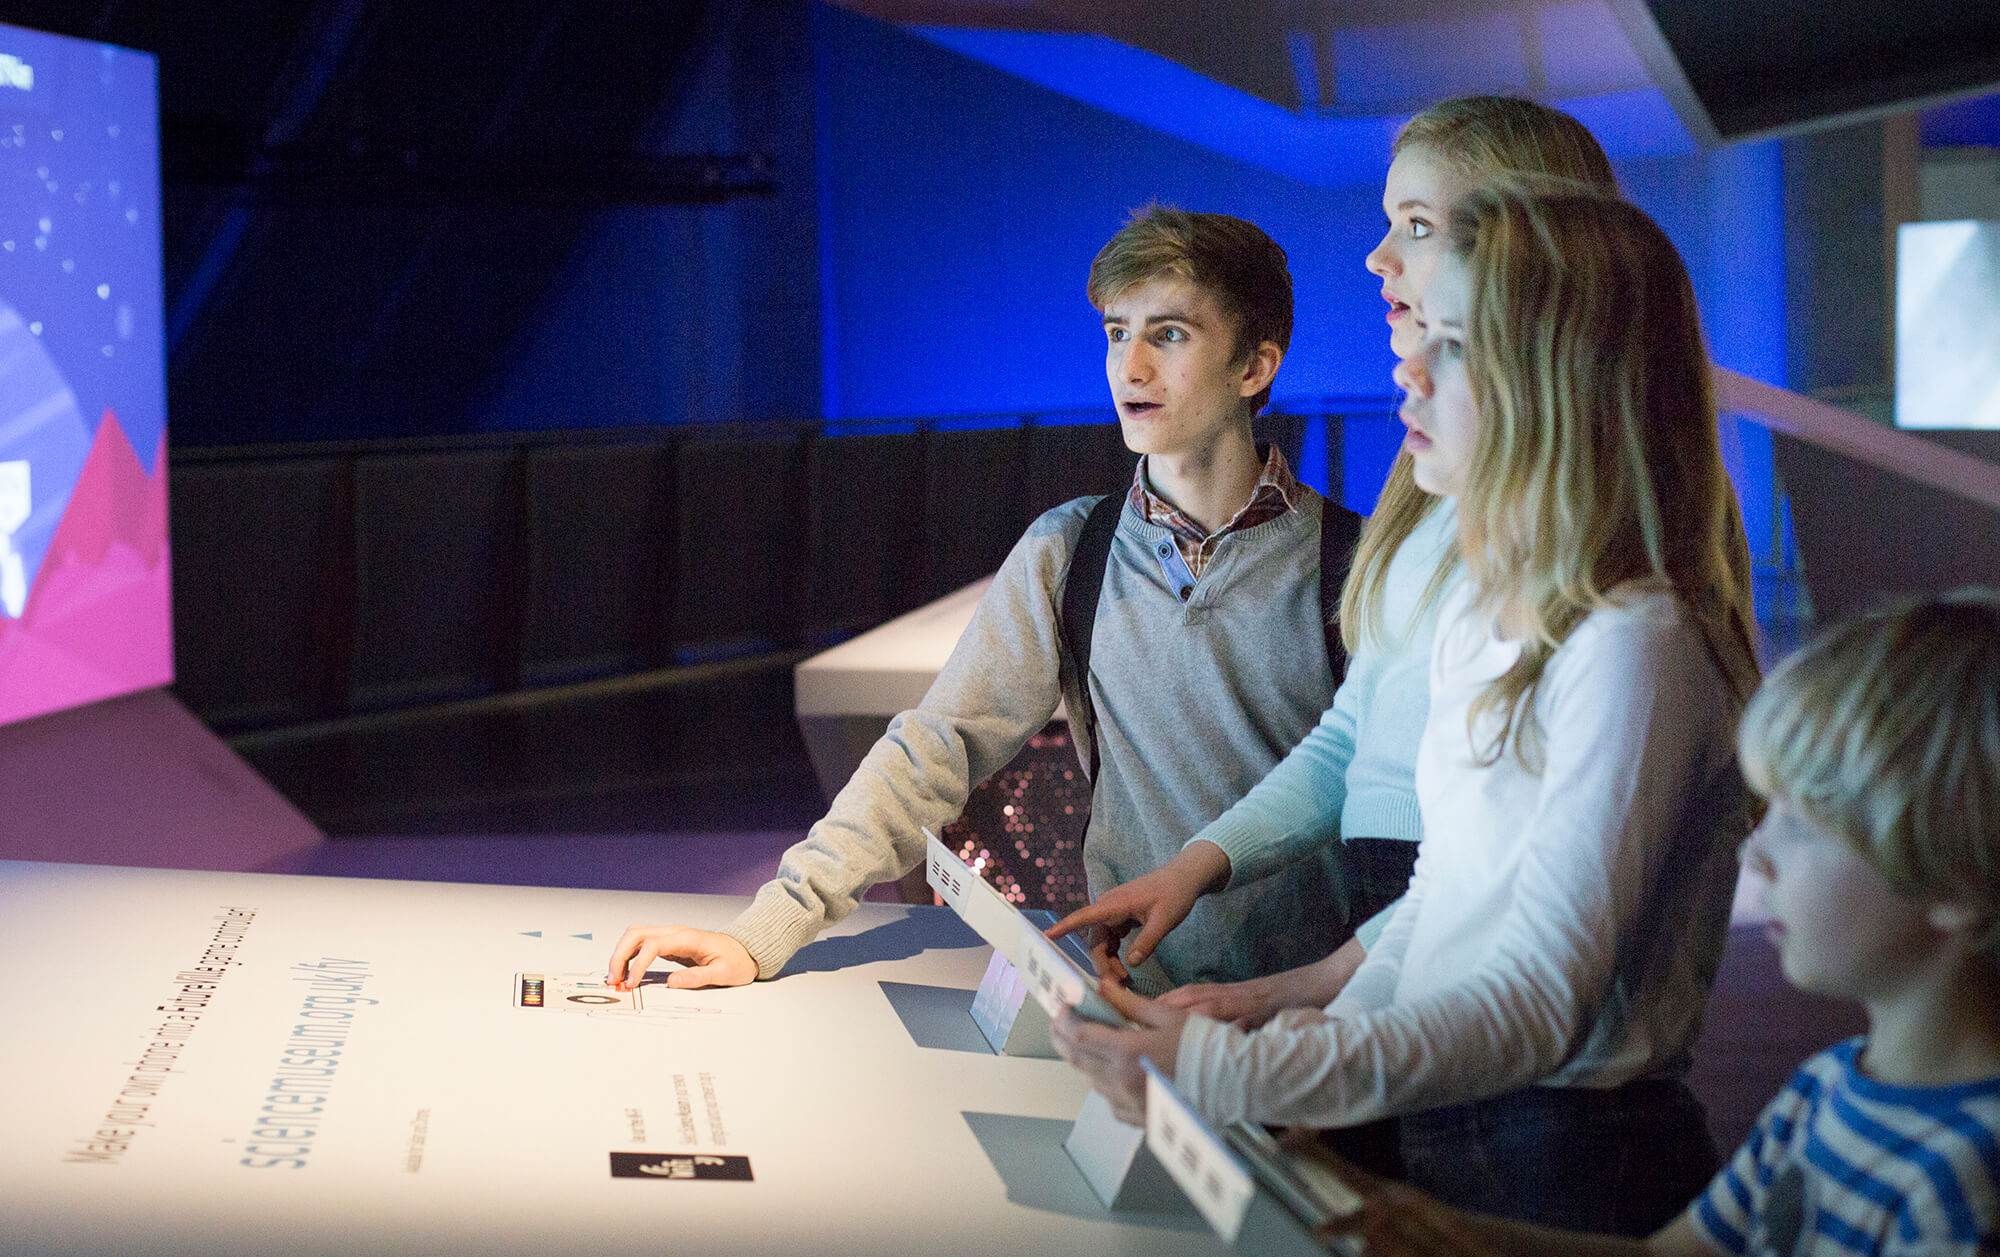 Science Museum, London, 17 December 2014